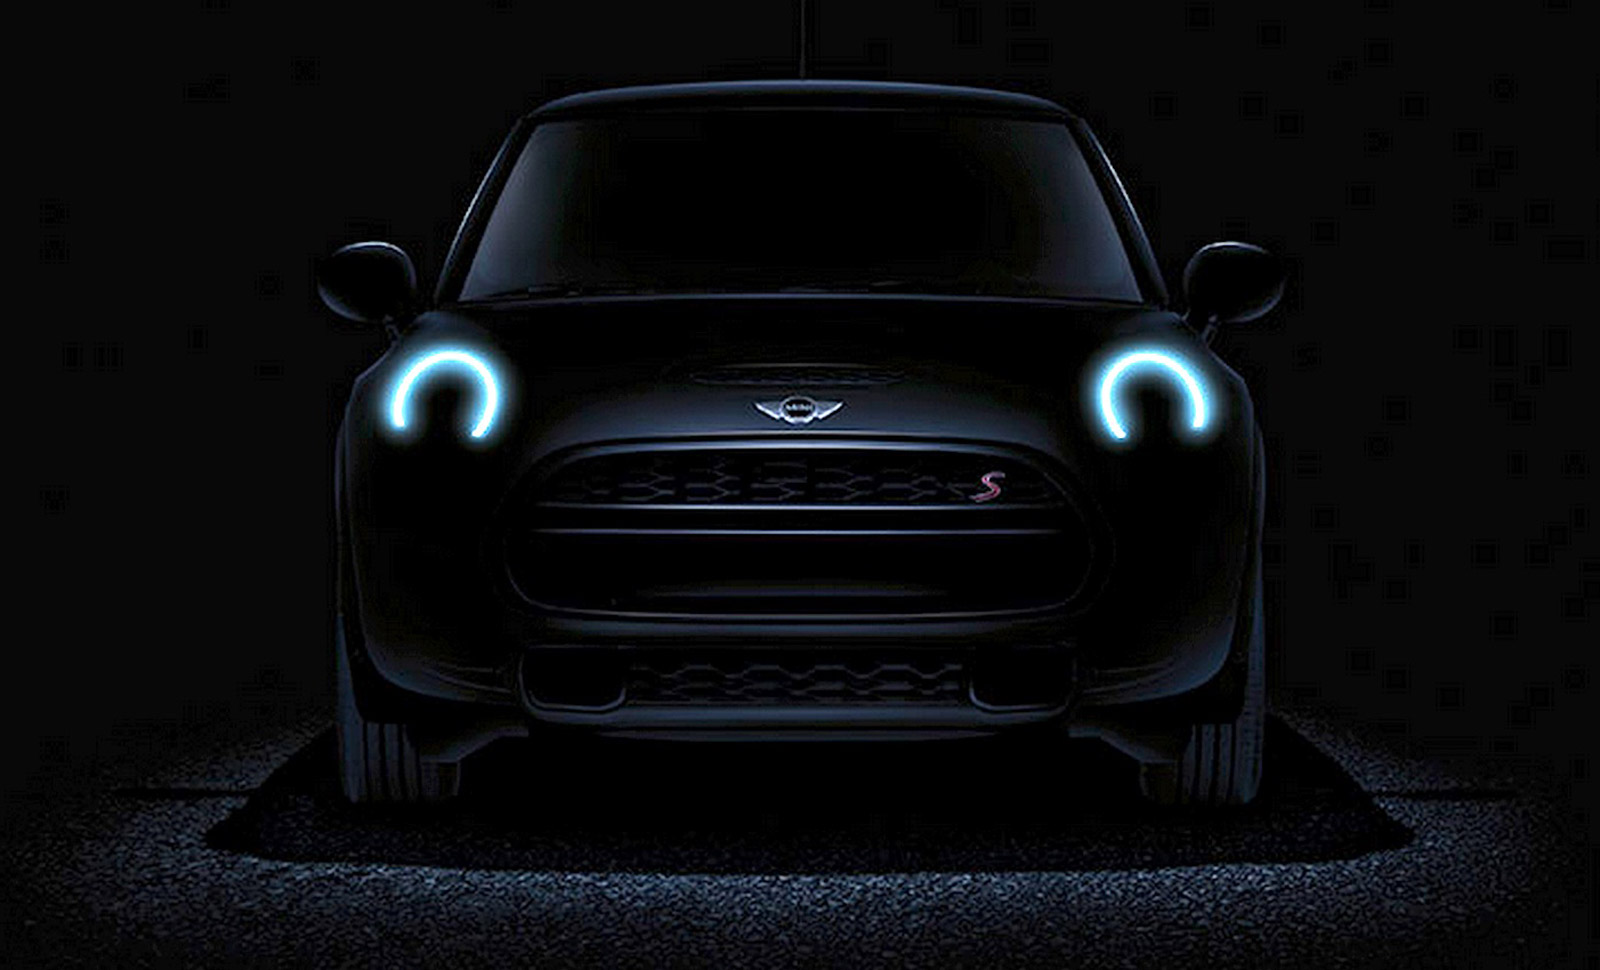 H 1 Travel 2015 likewise Bigstock 116782790 as well Gallery Detail furthermore 2013 Defender moreover Faster Forward Imagining The Future Car Of 2050. on aston martin hydrogen